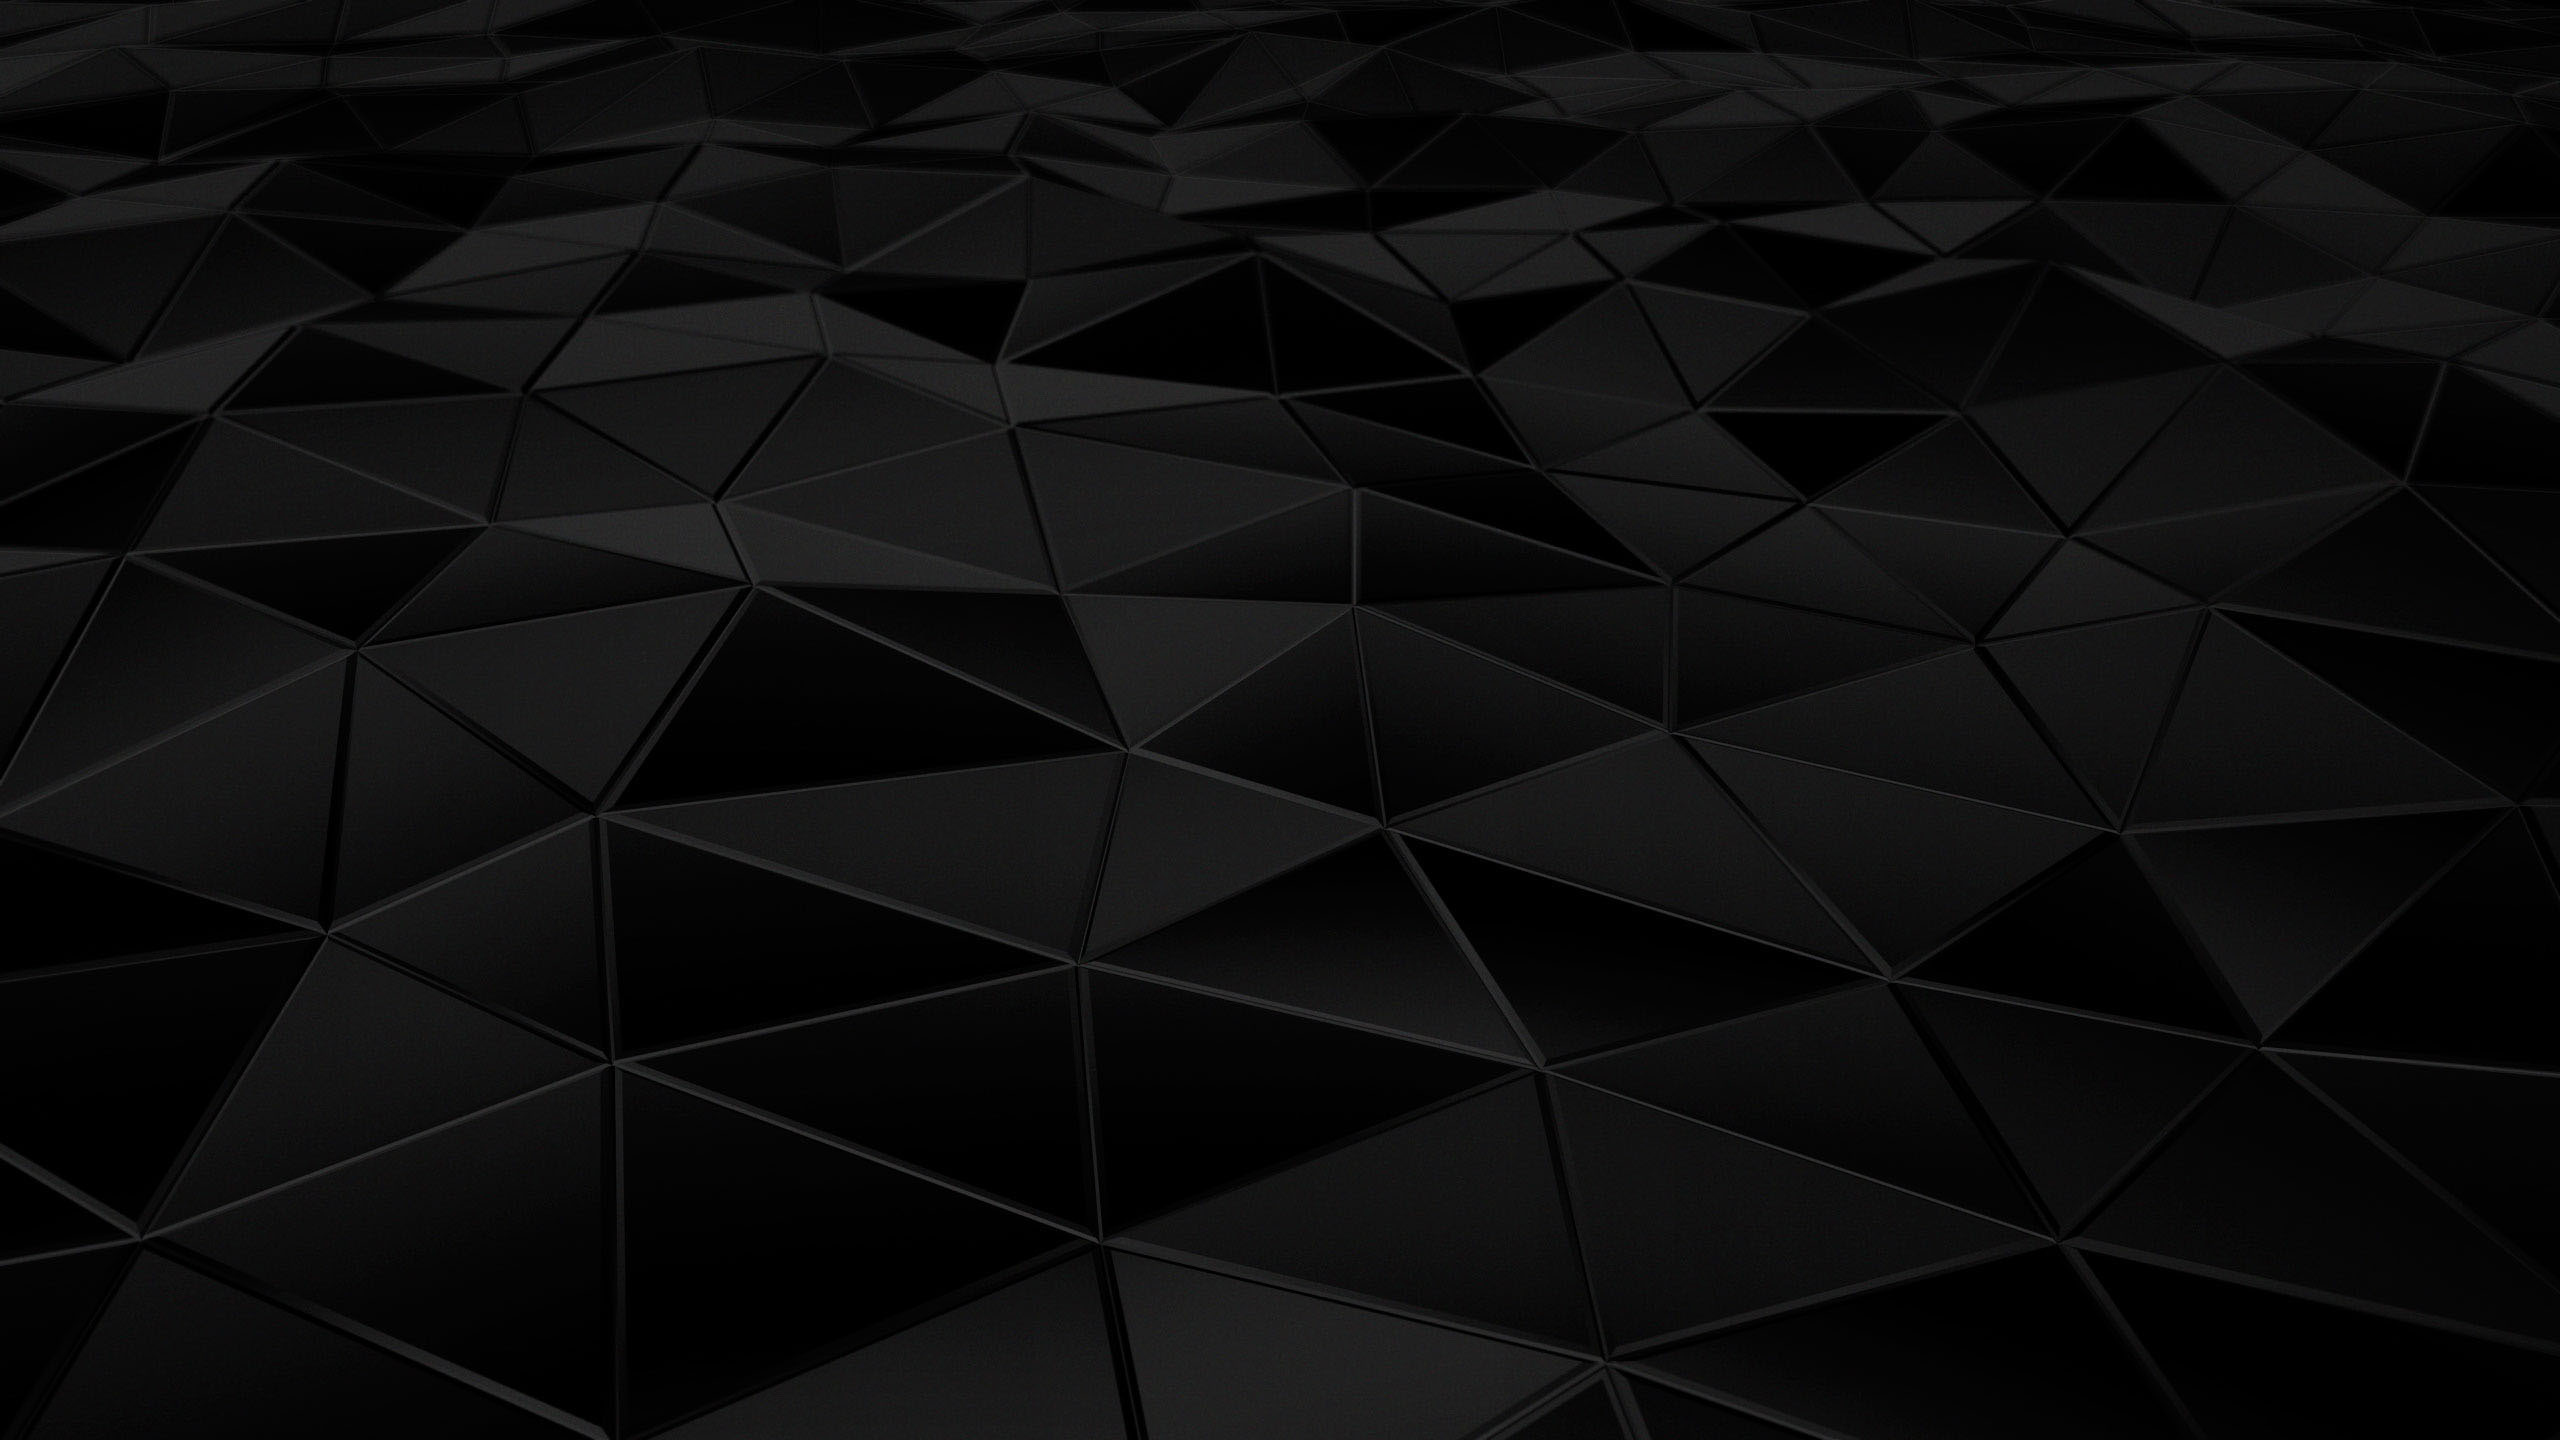 2560x1440 Black abstract Wallpapers Images Photos Pictures Backgrounds